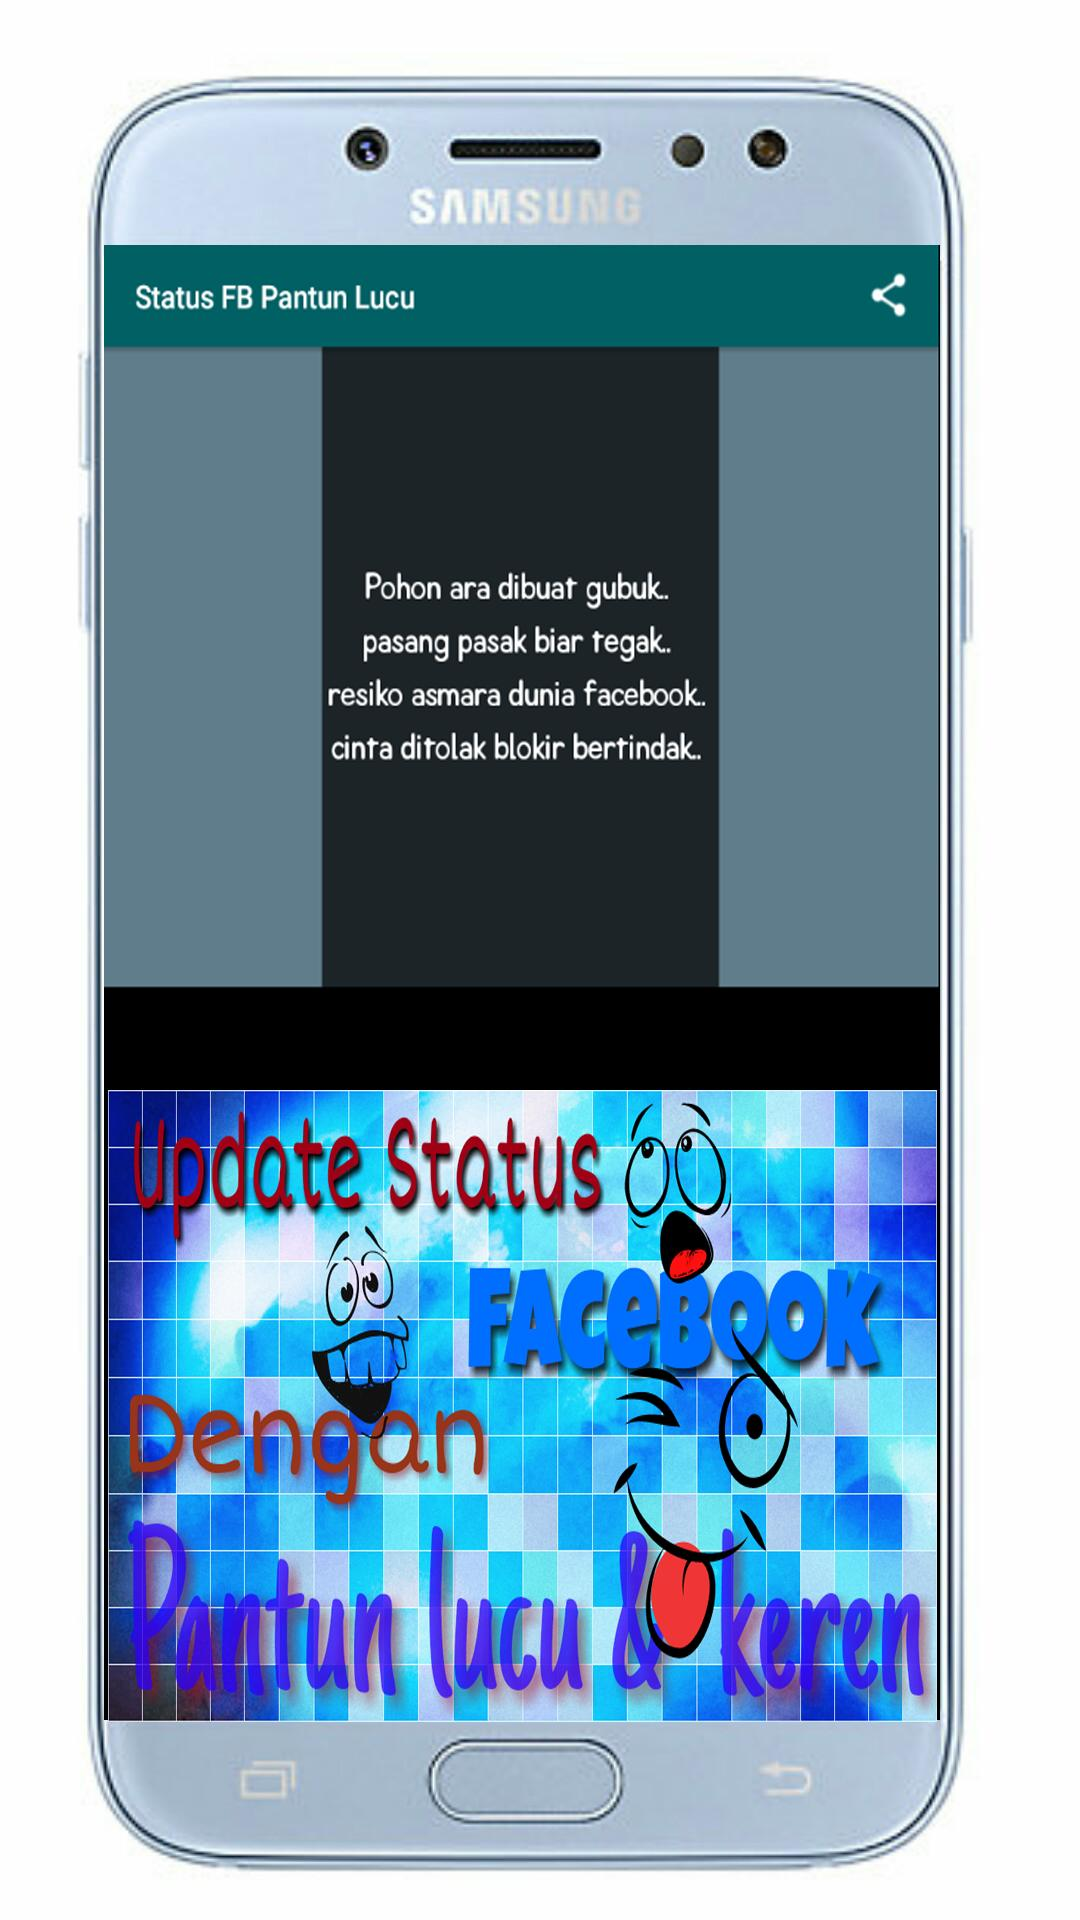 Status Fb Pantun Lucu For Android APK Download